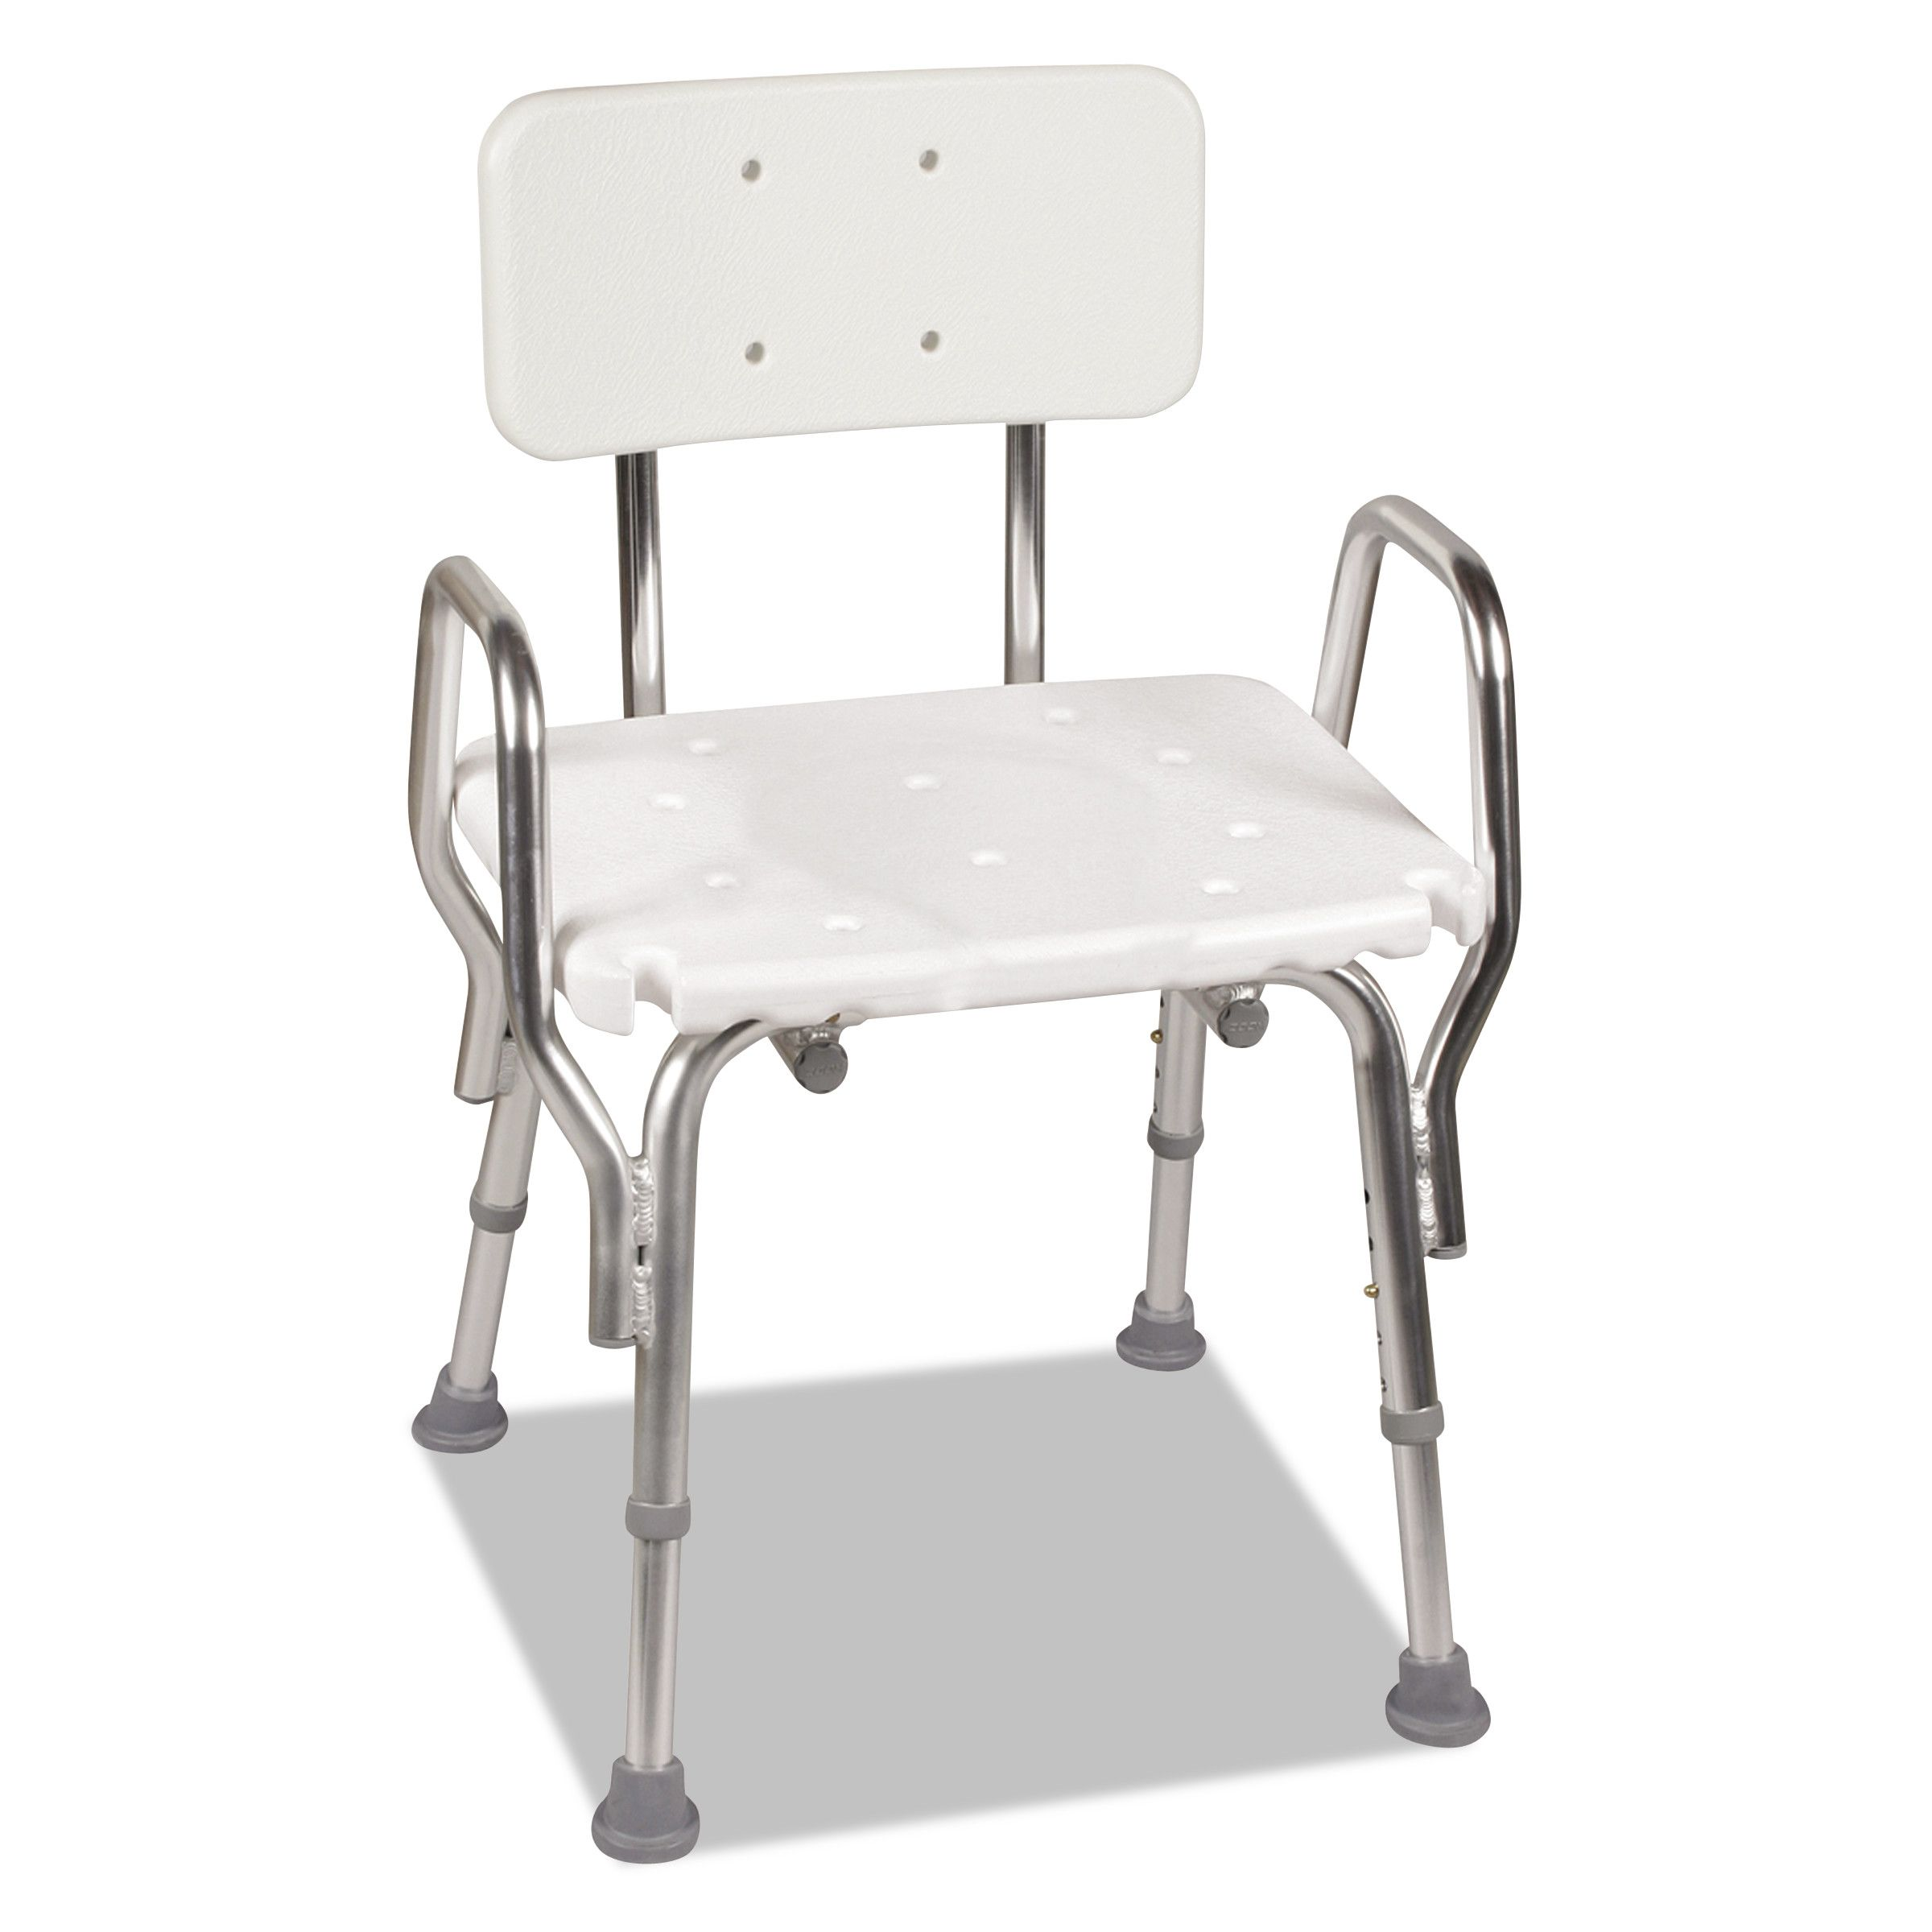 Stools for showers for disabled, shower chair with back. | Shower ...